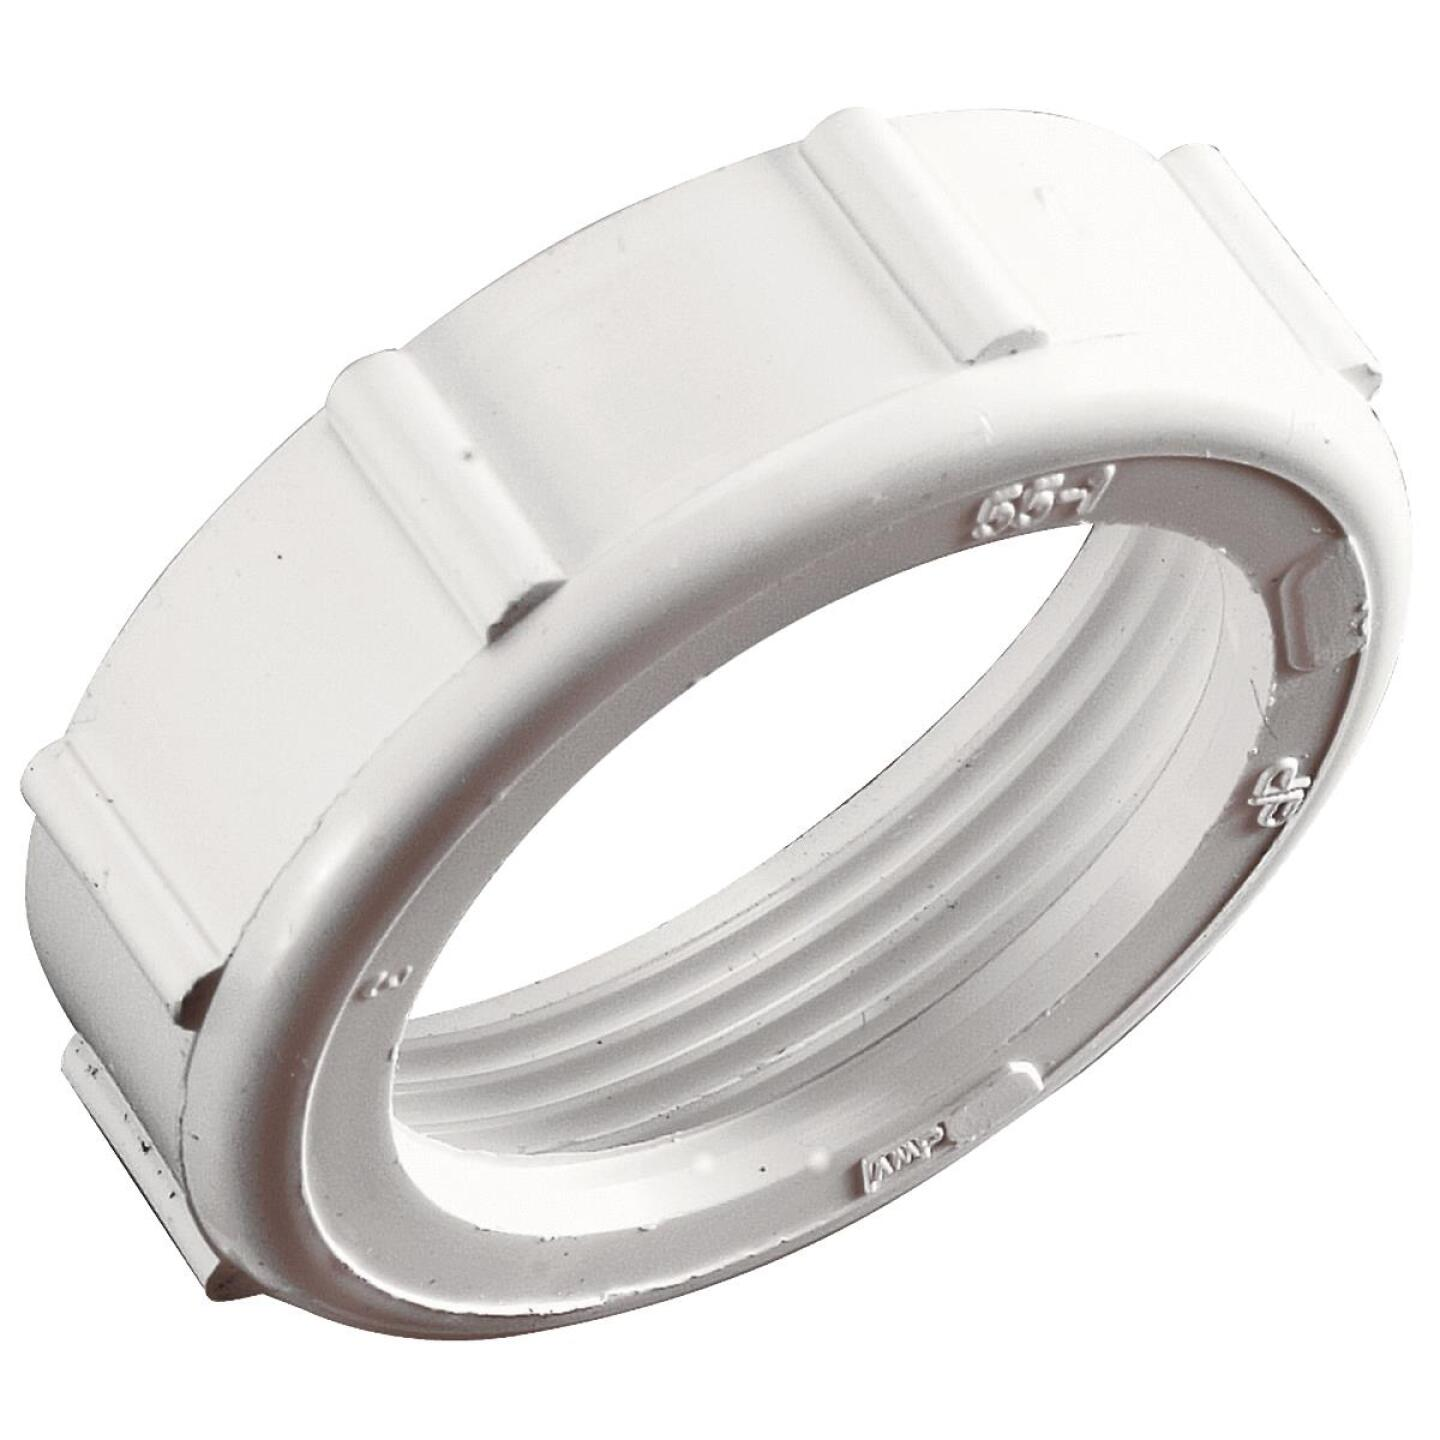 Do it 1-1/2 In. x 1-1/2 In. White Plastic Slip Joint Nut and Washer Image 2